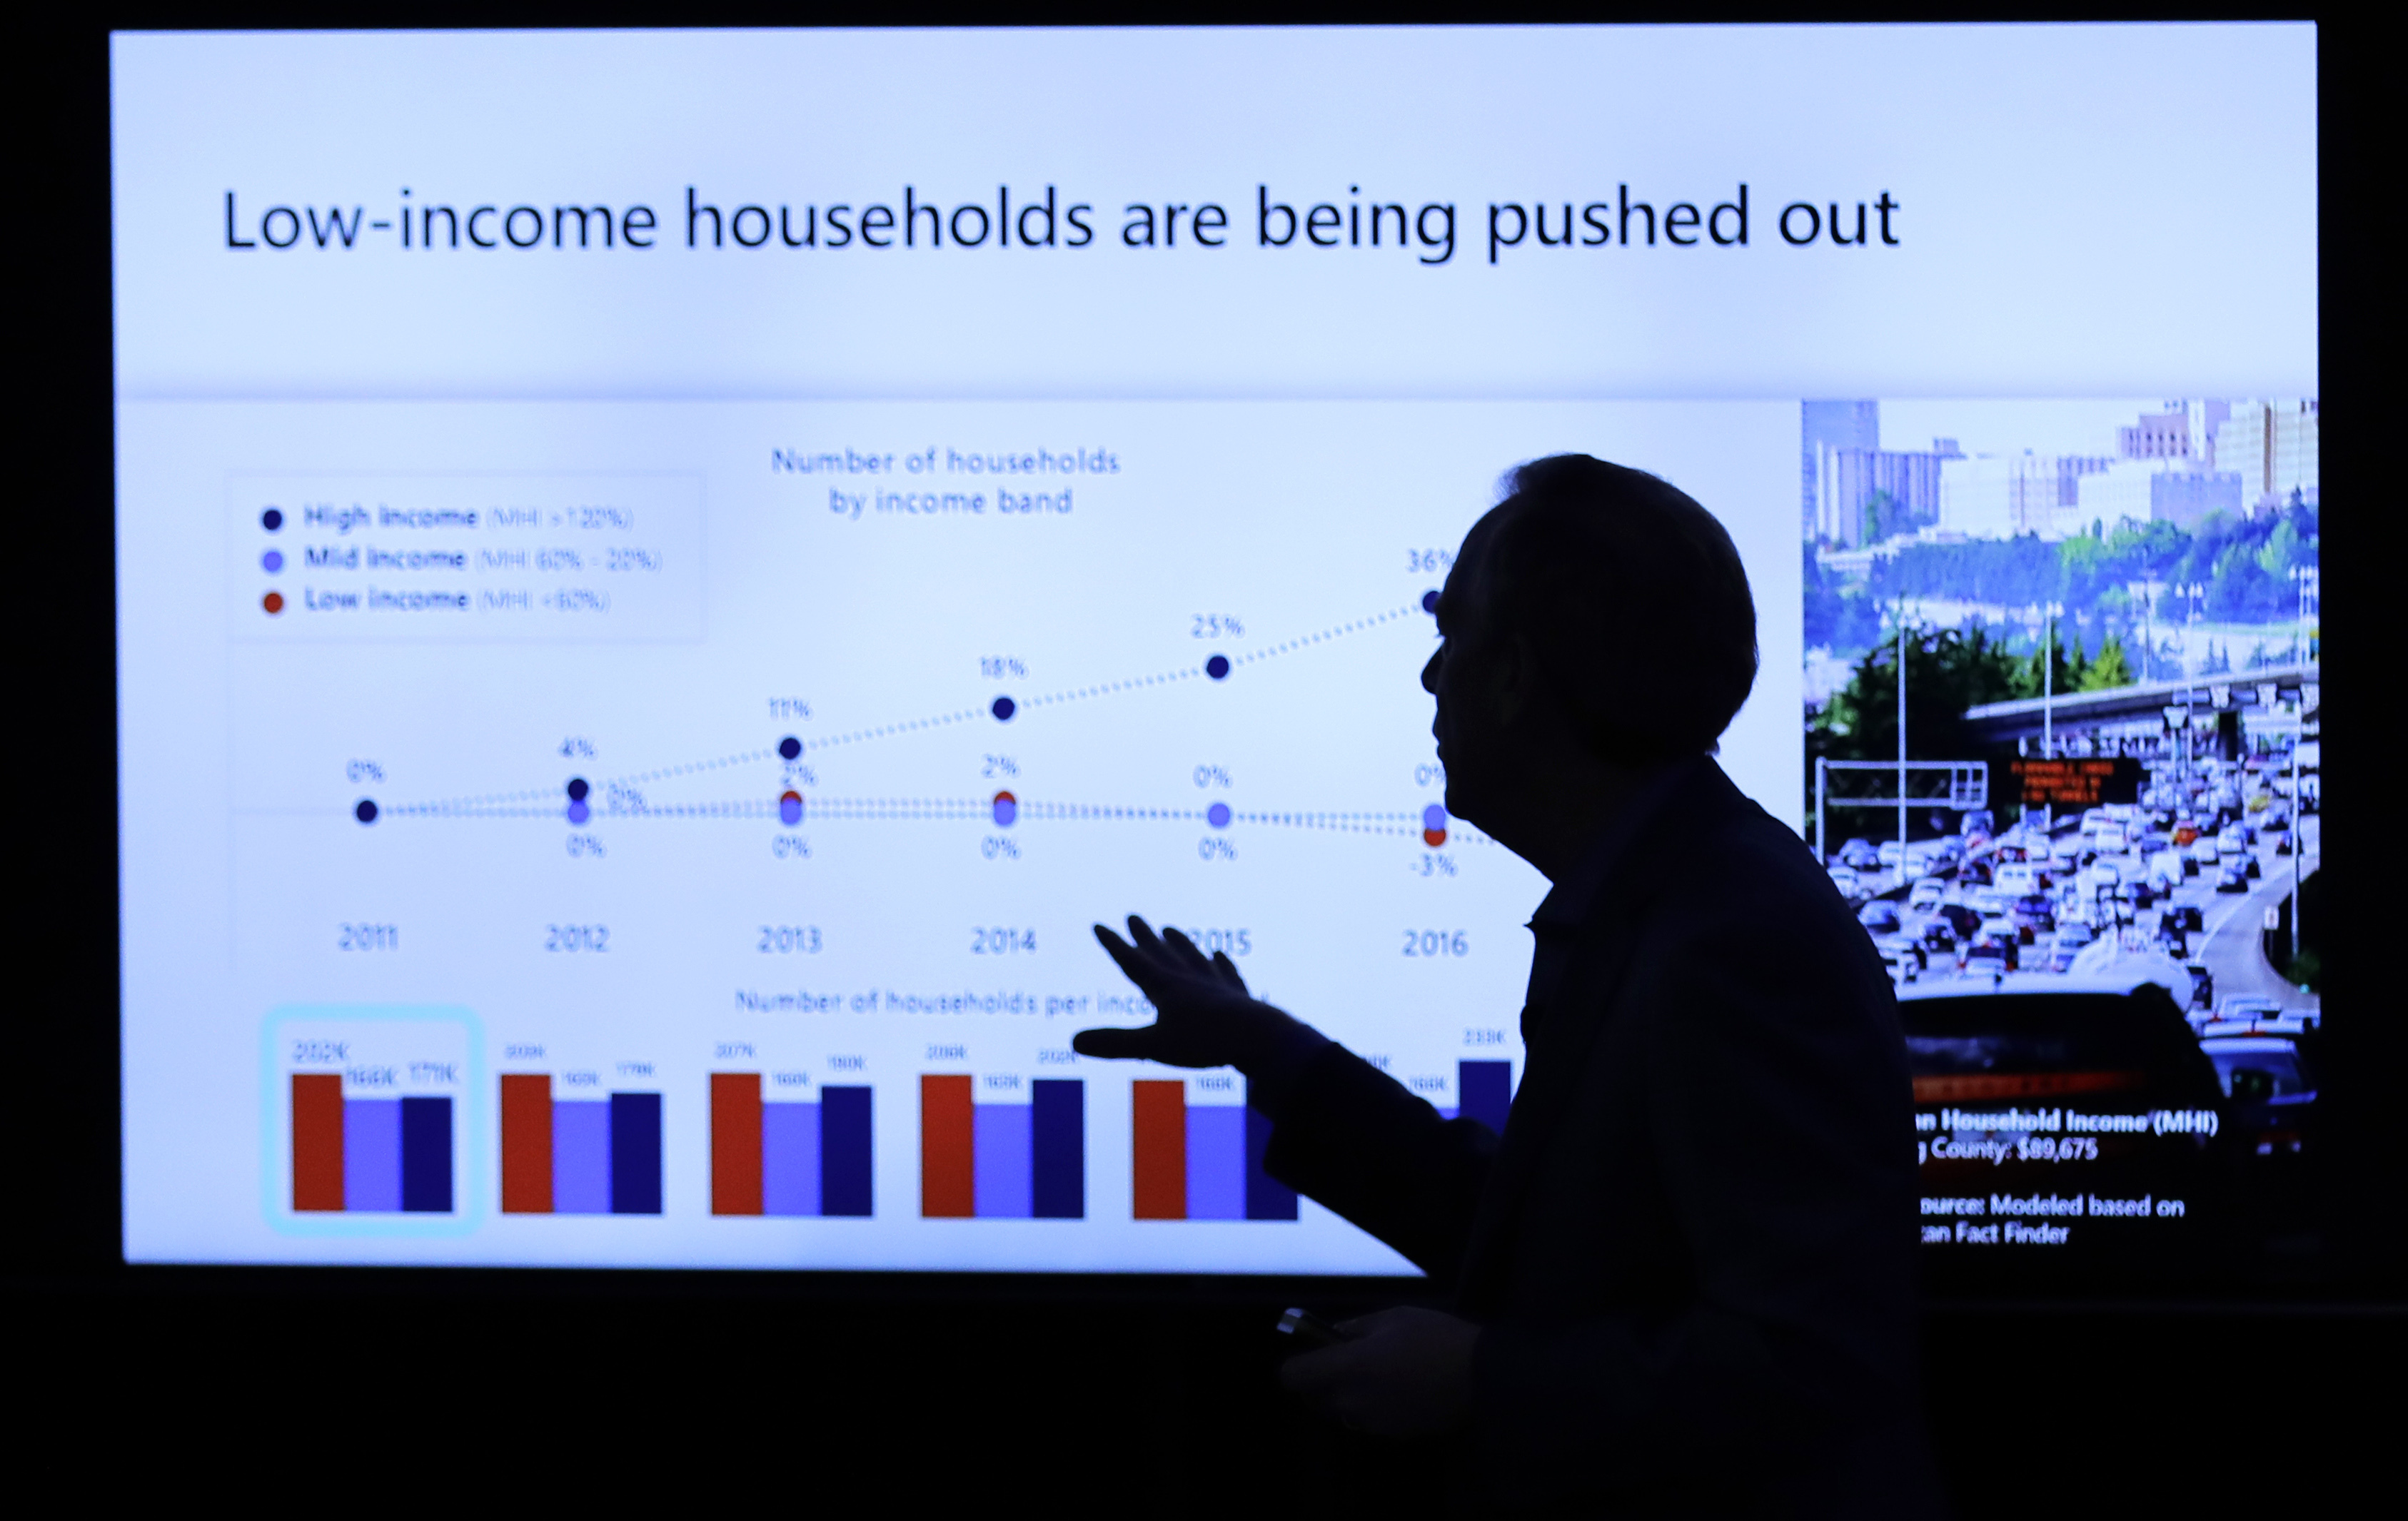 Microsoft Corp. President Brad Smith speaks Thursday, Jan. 17, 2019, during a news conference in Bellevue, Wash., to announce a $500 million pledge by Microsoft to develop affordable housing for low- and middle-income workers in response to the Seattle region's widening affordability gap and to also to address homelessness. (AP Photo/Ted S. Warren)